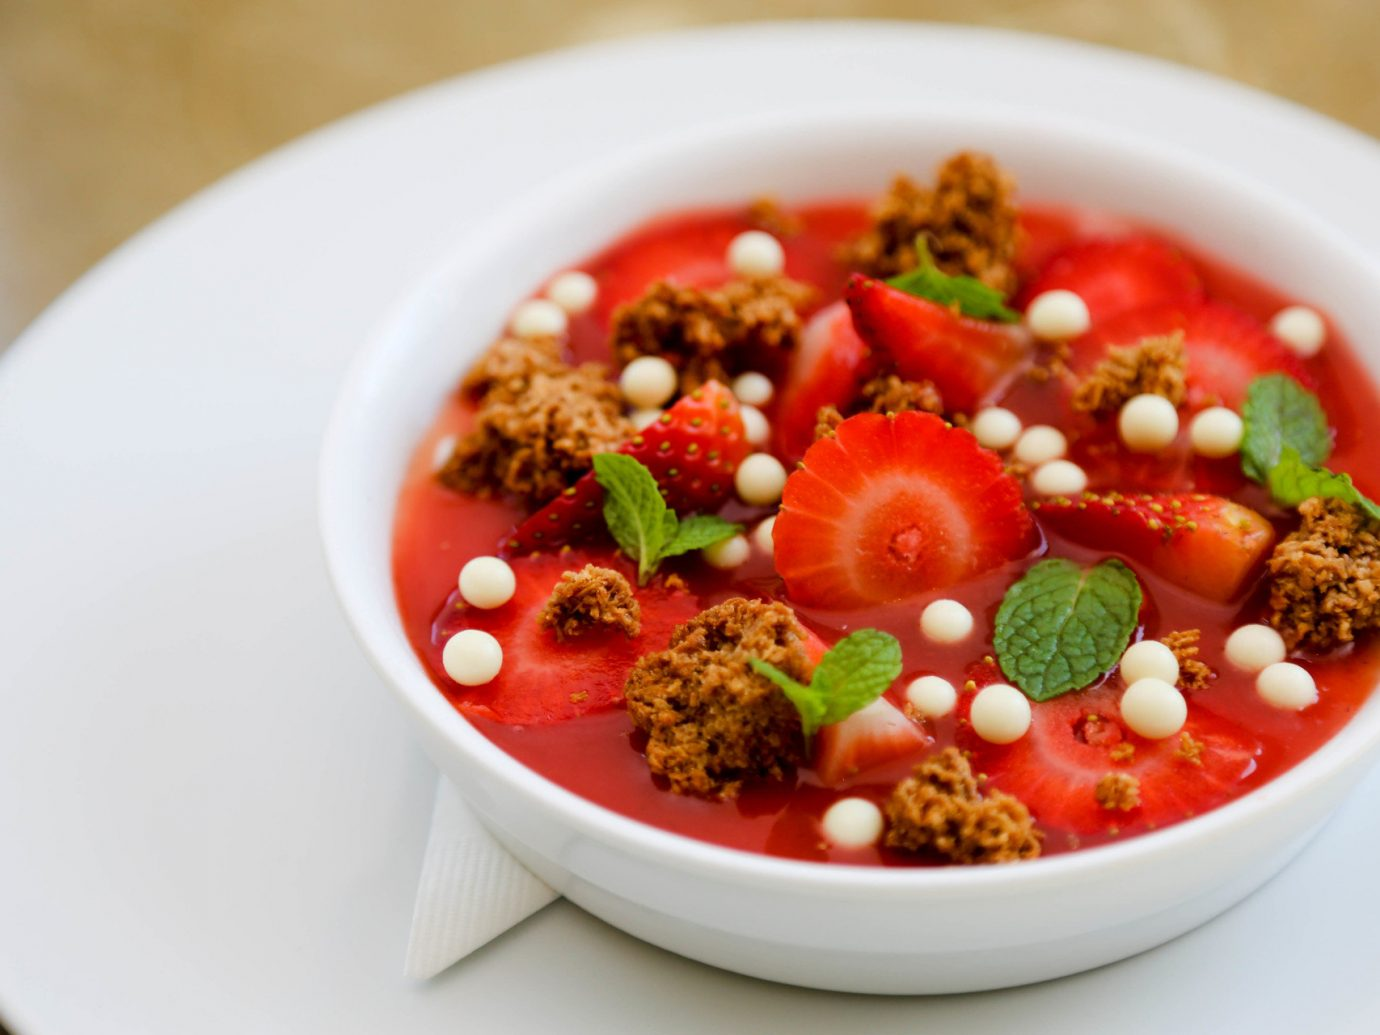 Boutique Hotels Hotels Trip Ideas plate food dish produce land plant vegetable white cuisine salad fruit flowering plant meal cereal pea dishware meat bowl